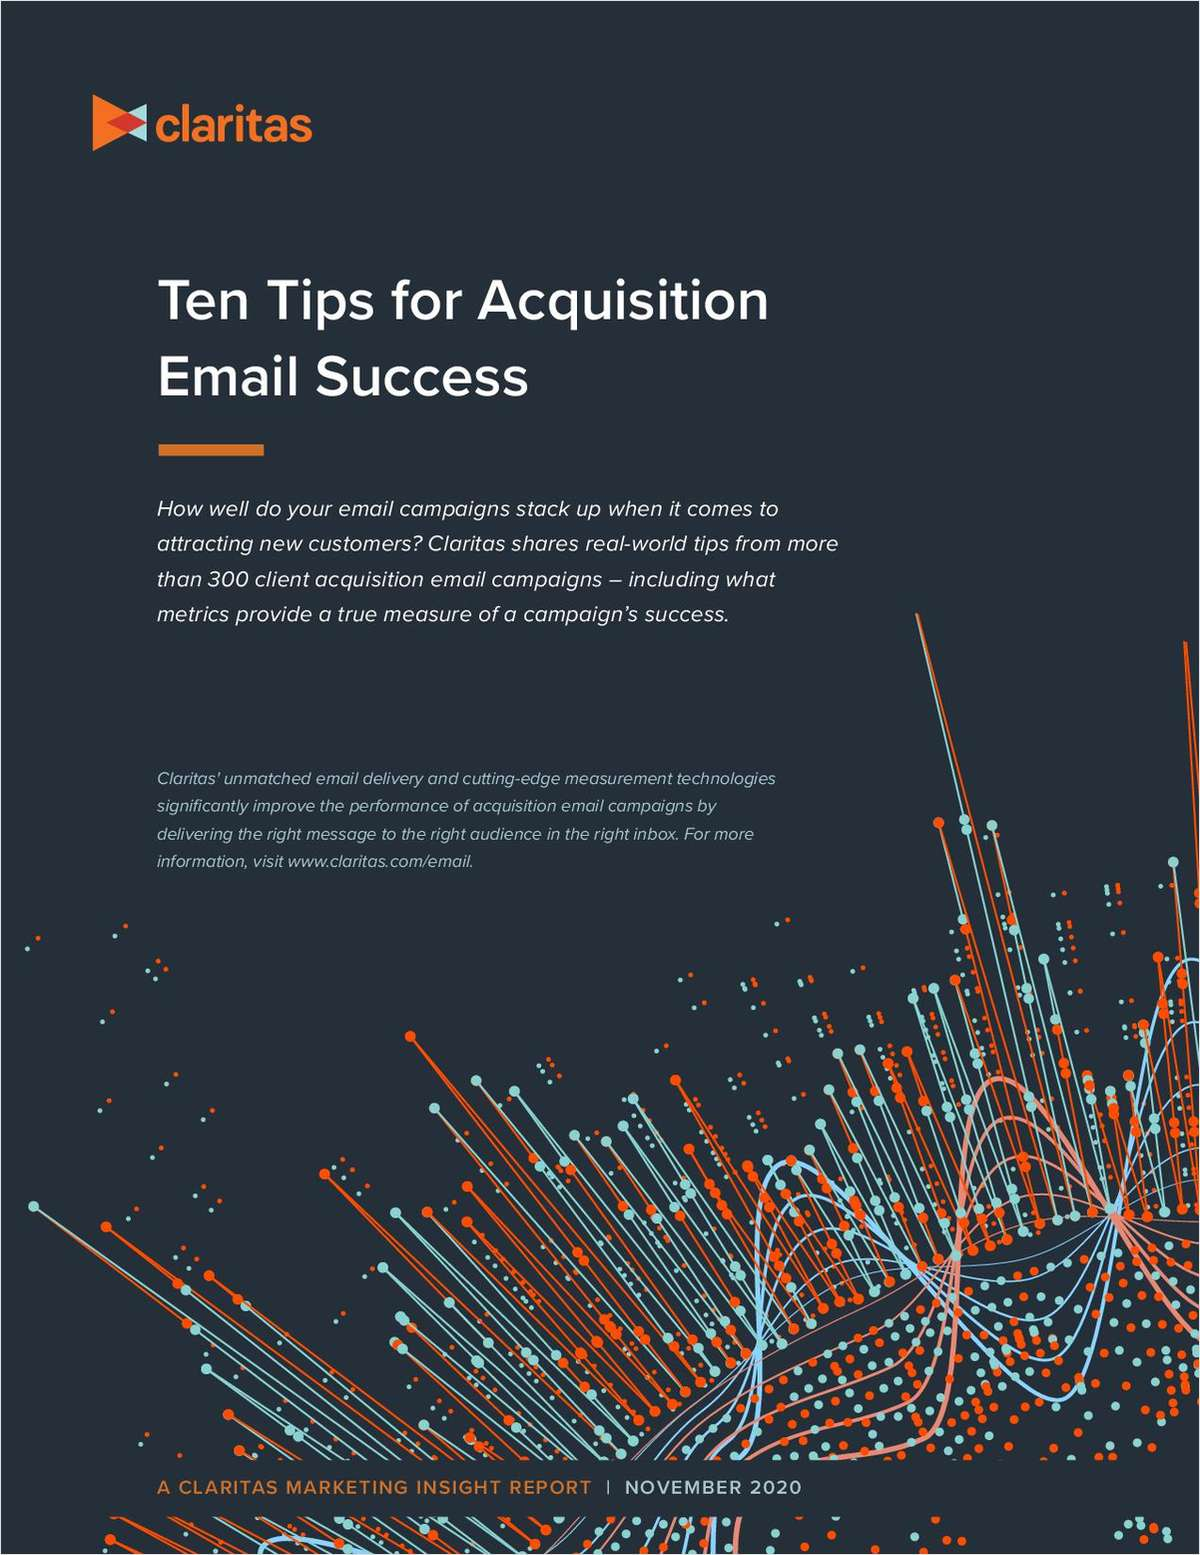 Ten Tips for Acquisition Email Success